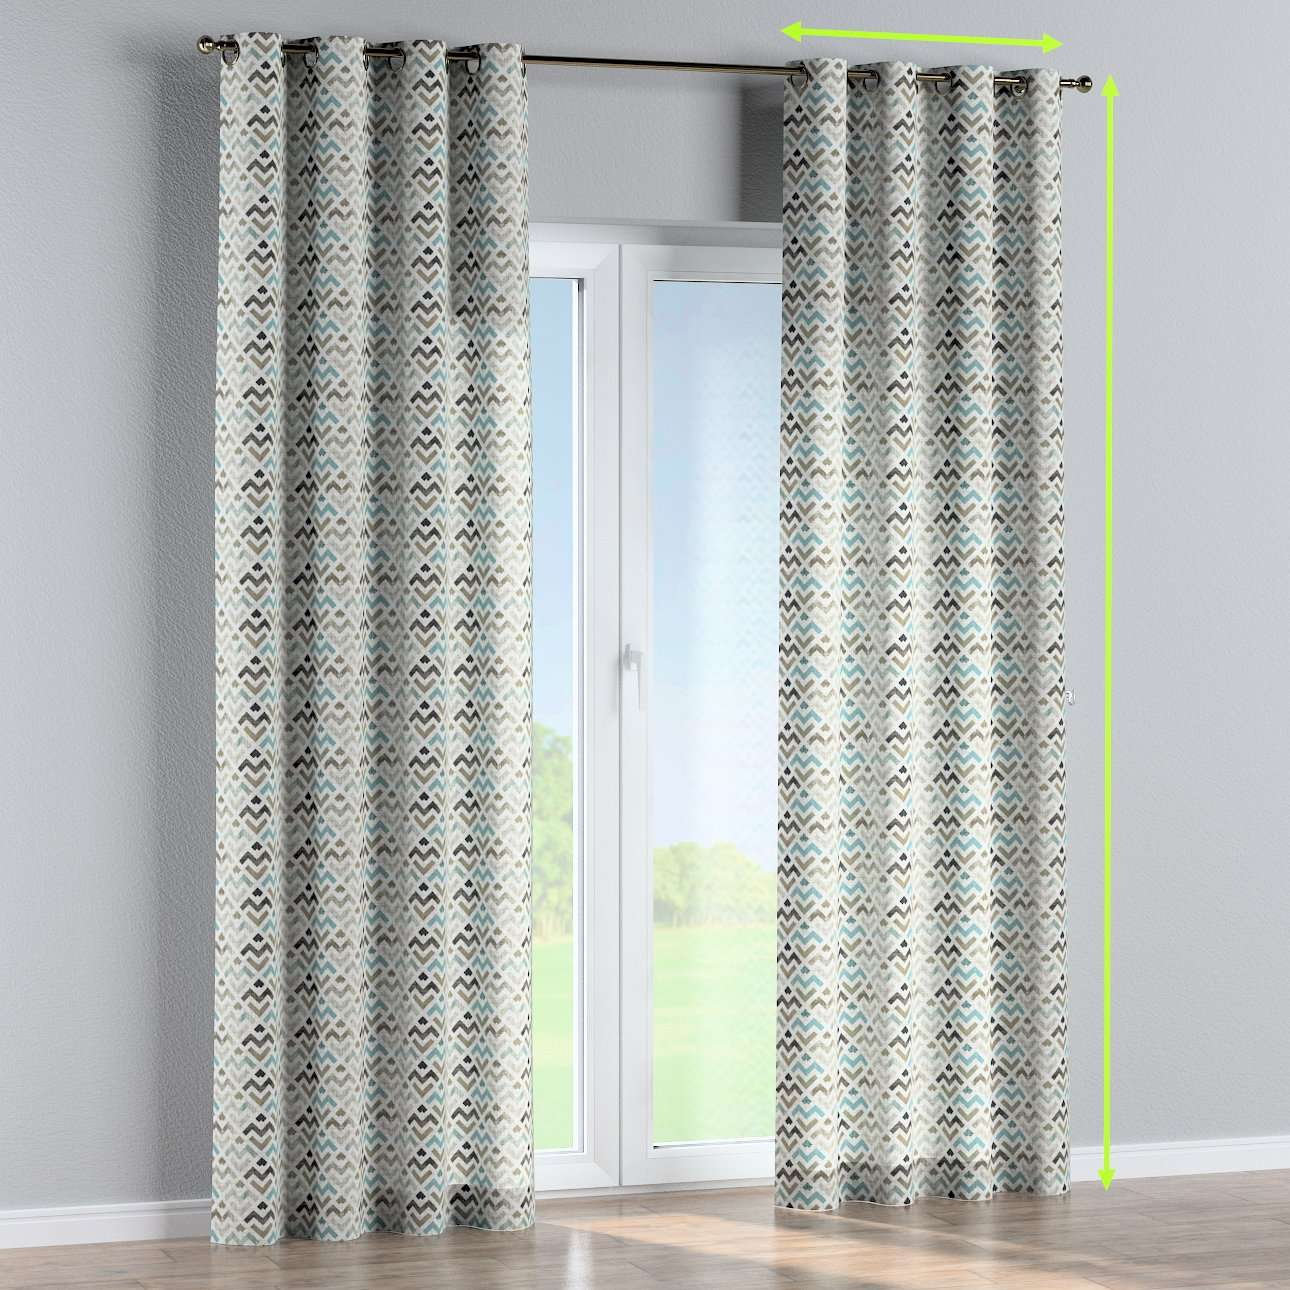 Eyelet curtain in collection Modern, fabric: 141-93